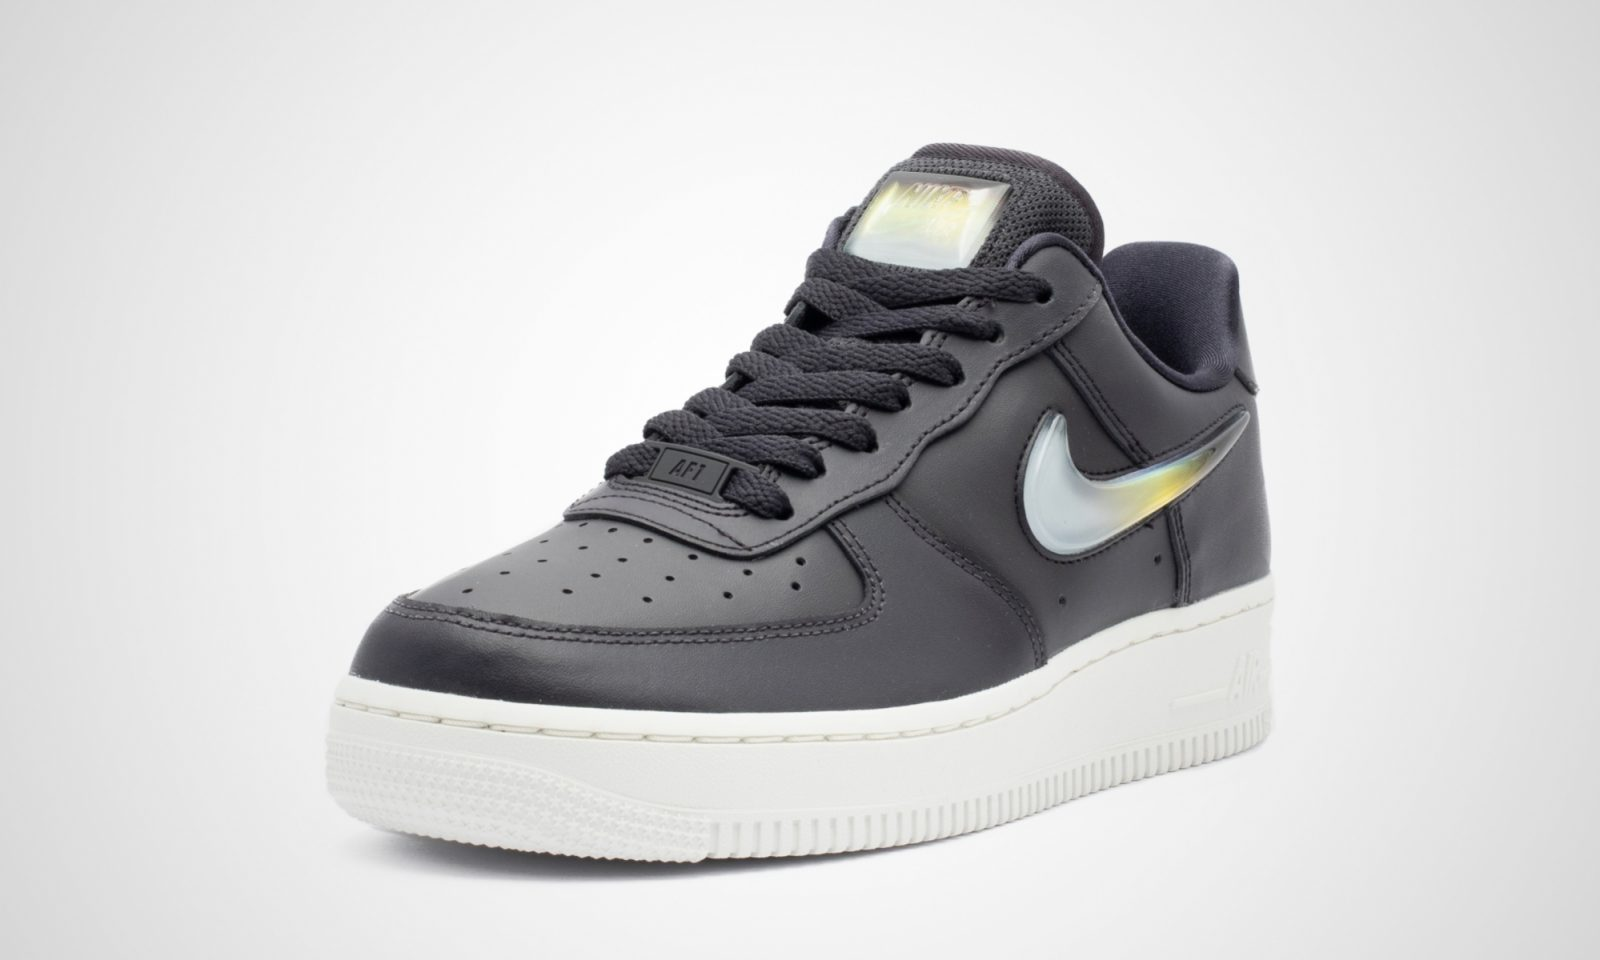 Nike Air Force 1 07 PRM Black | AH6827-004